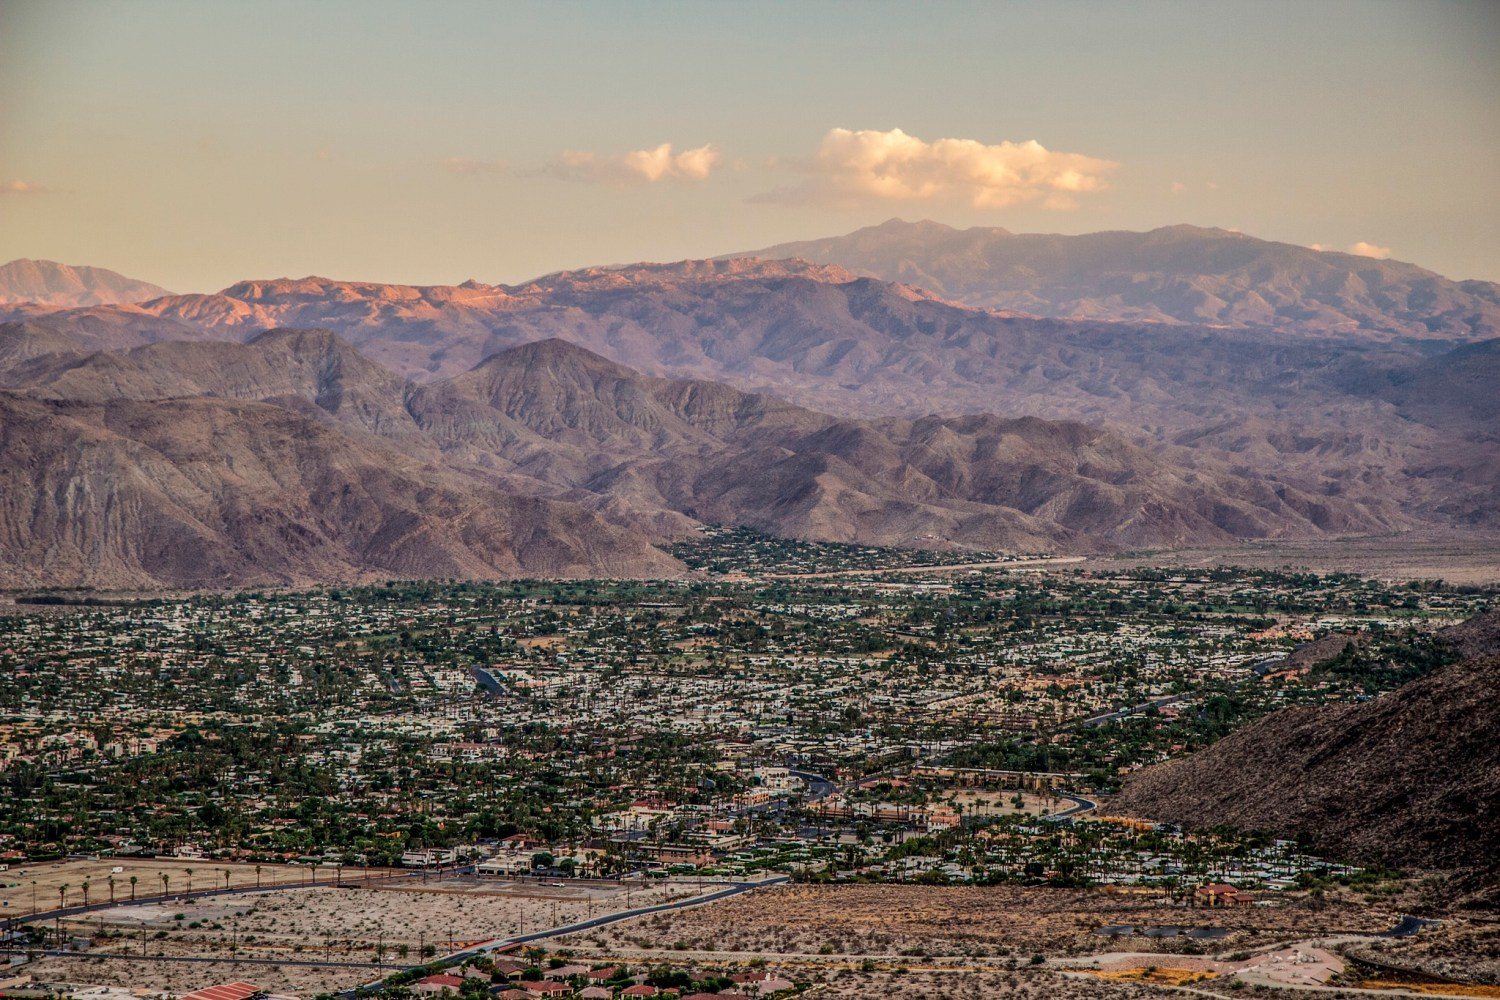 The Coachella Valley of Southern California is the site of a legal contest for groundwater rights. The Agua Caliente tribe won an important courtroom victory on March 7. Photo courtesy of Flickr/Creative Commons